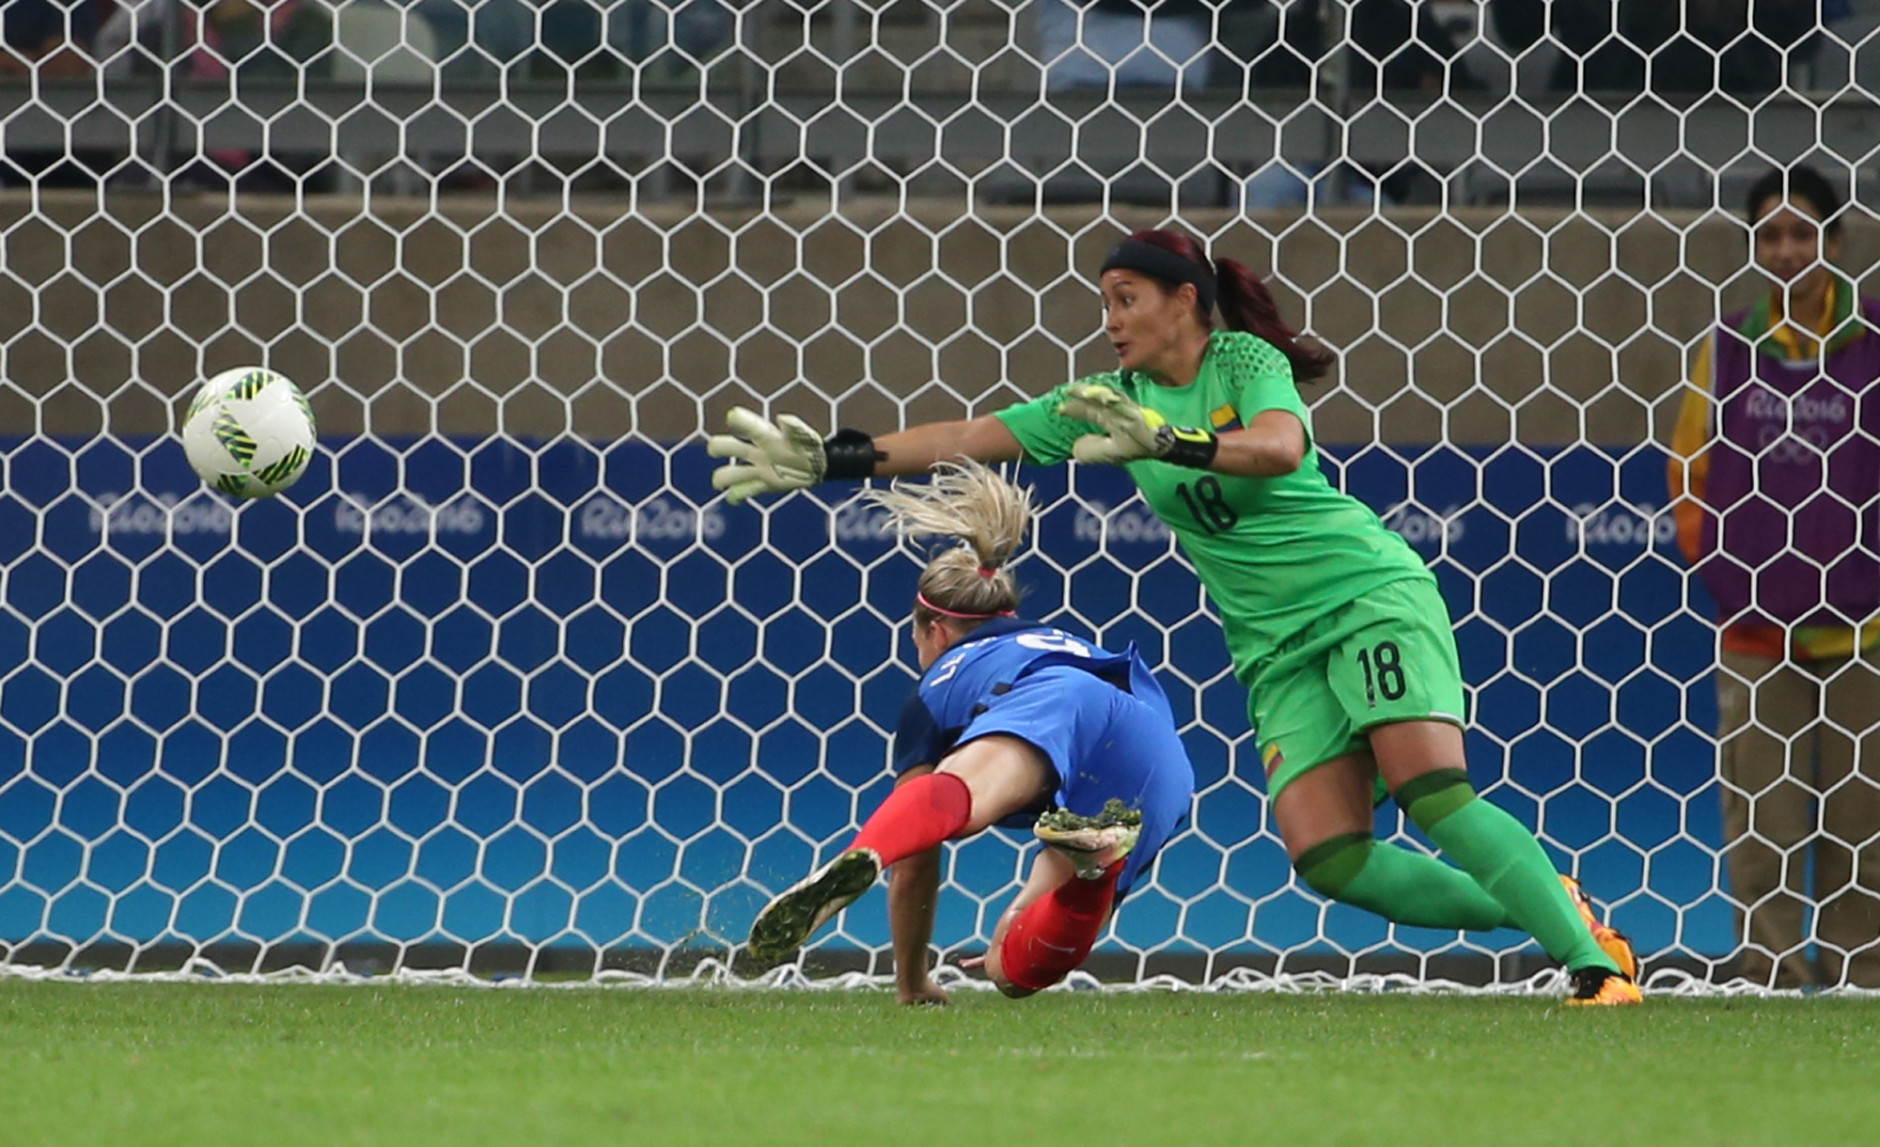 France's Eugenie Le Sommer, bottom, scores a goal past Colombia goalkeeper Catalina Perez during the Women's Olympic Football Tournament at the Mineirao stadium in Belo Horizonte, Brazil, Wednesday, Aug. 3, 2016. (AP Photo/Eugenio Savio)